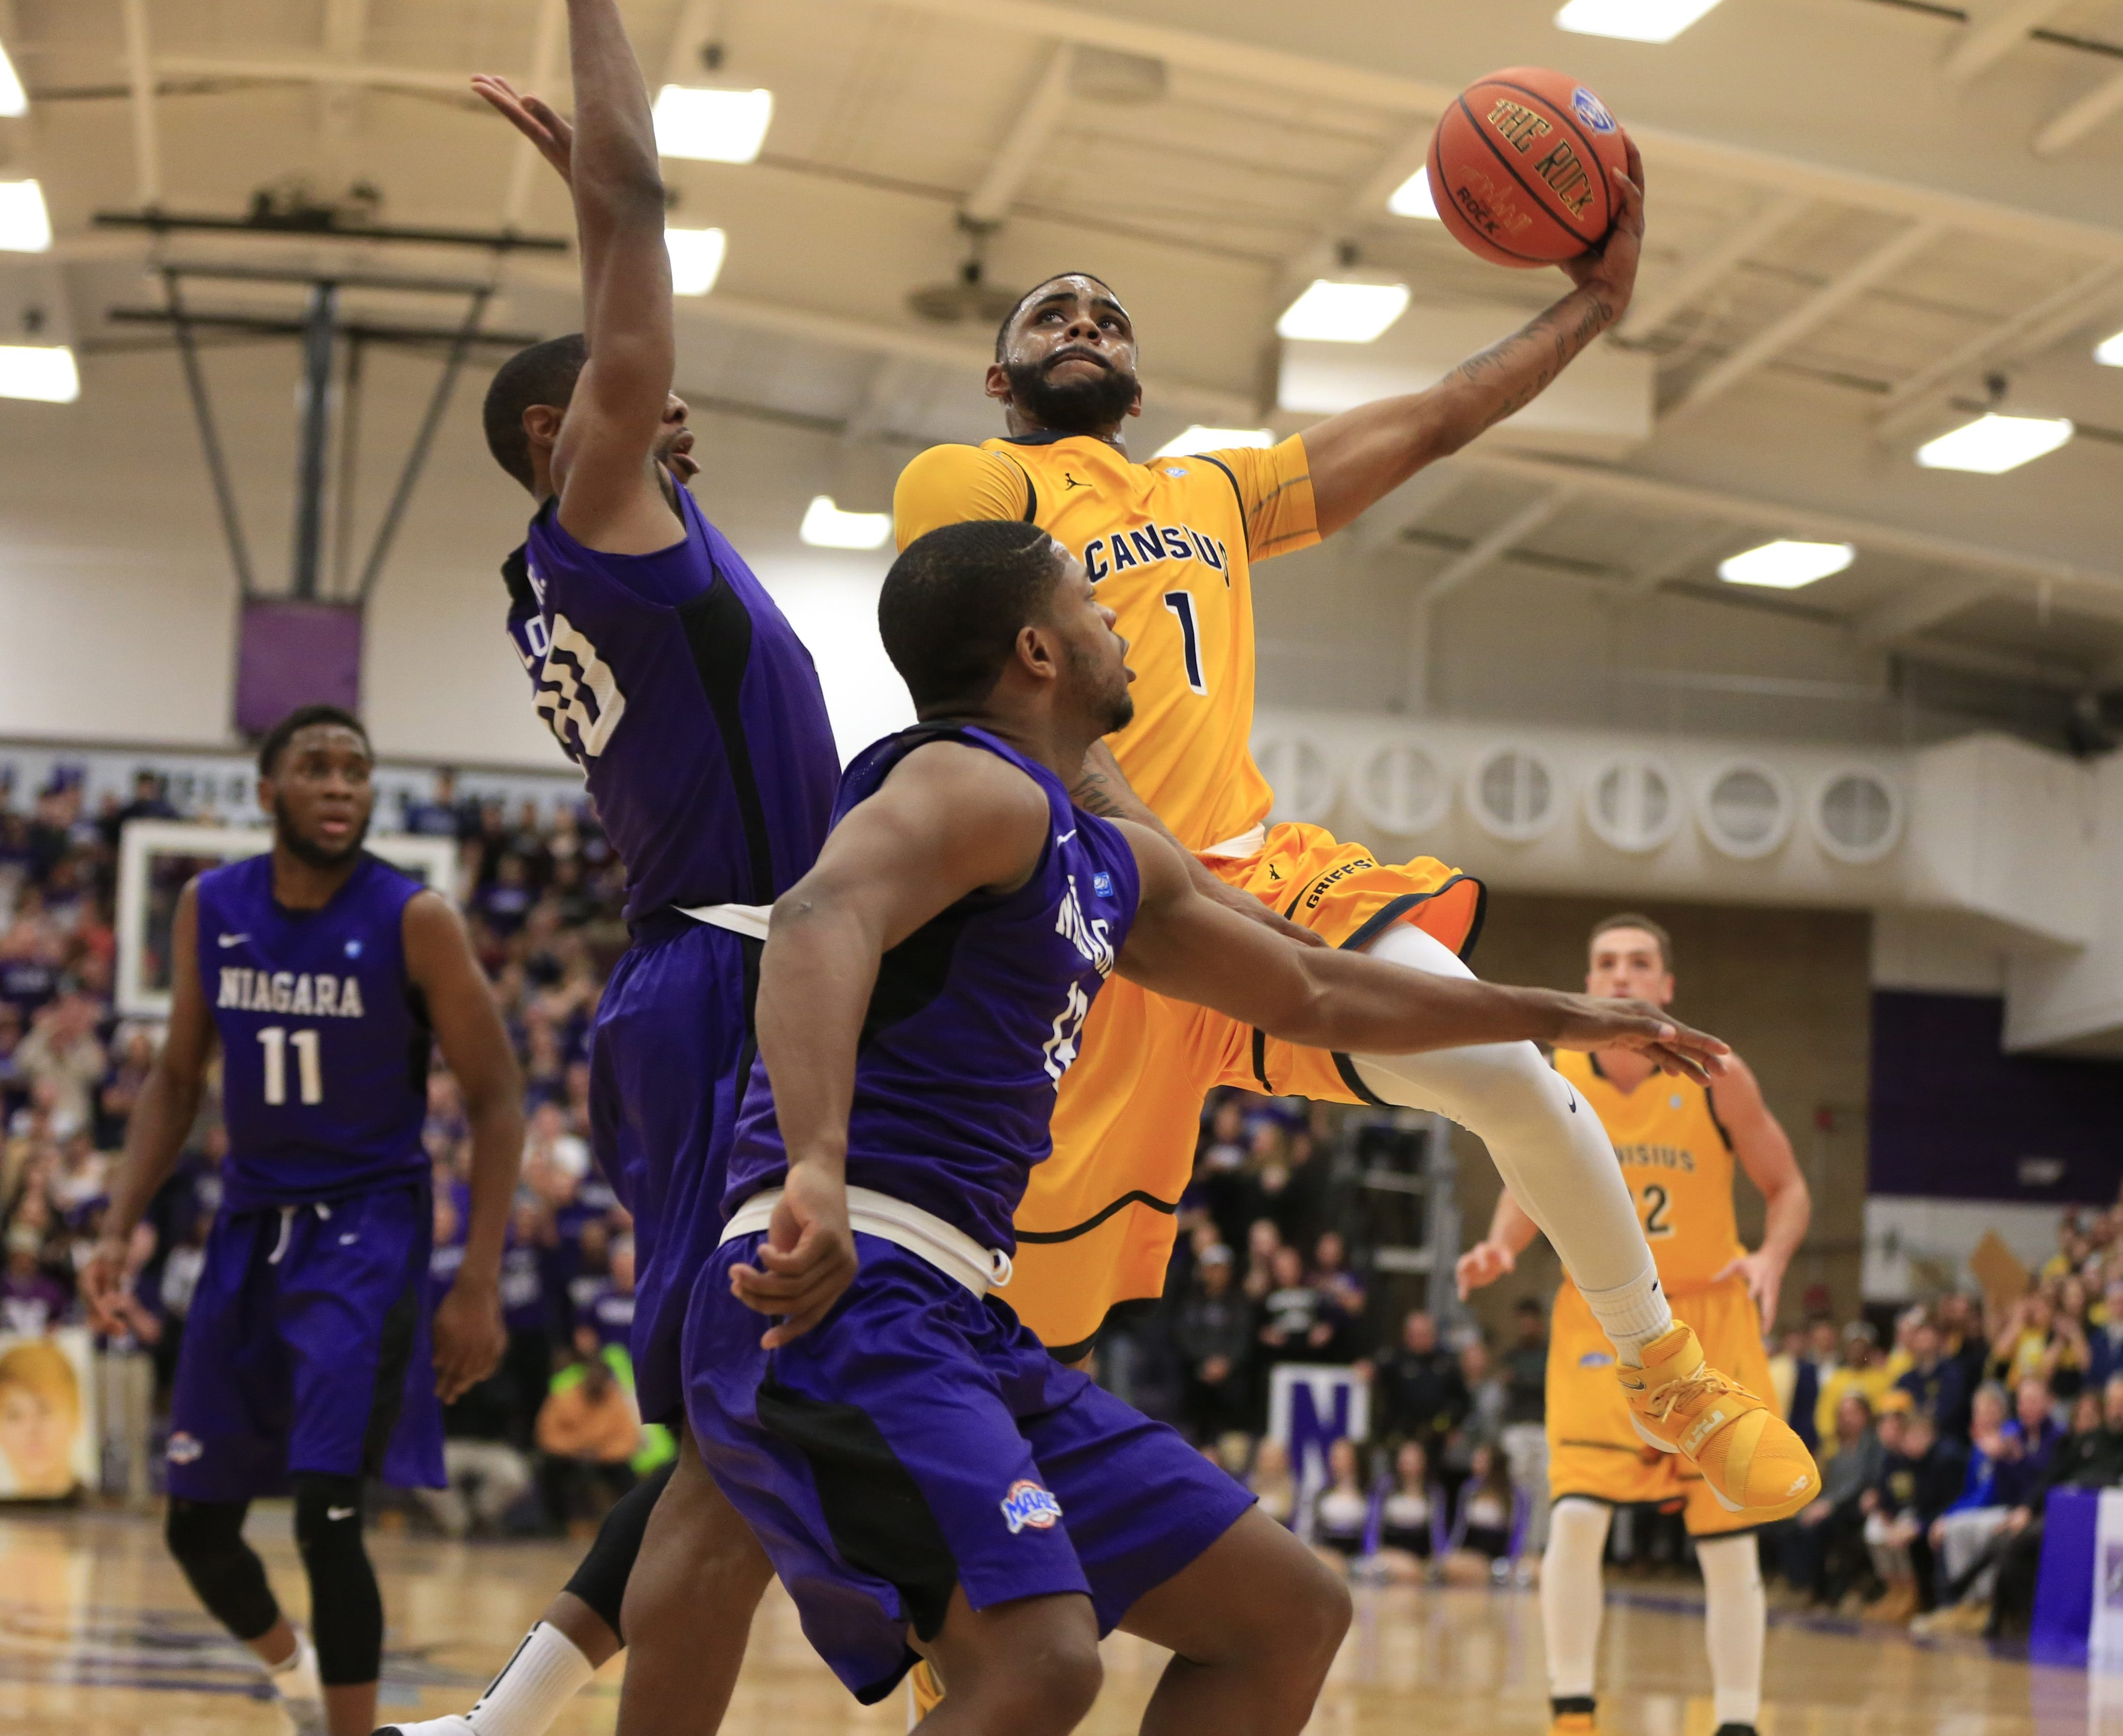 Malcolm McMillan, who led Canisius with 17 points, drives to the basket in the first half against Niagara at the Gallagher Center.